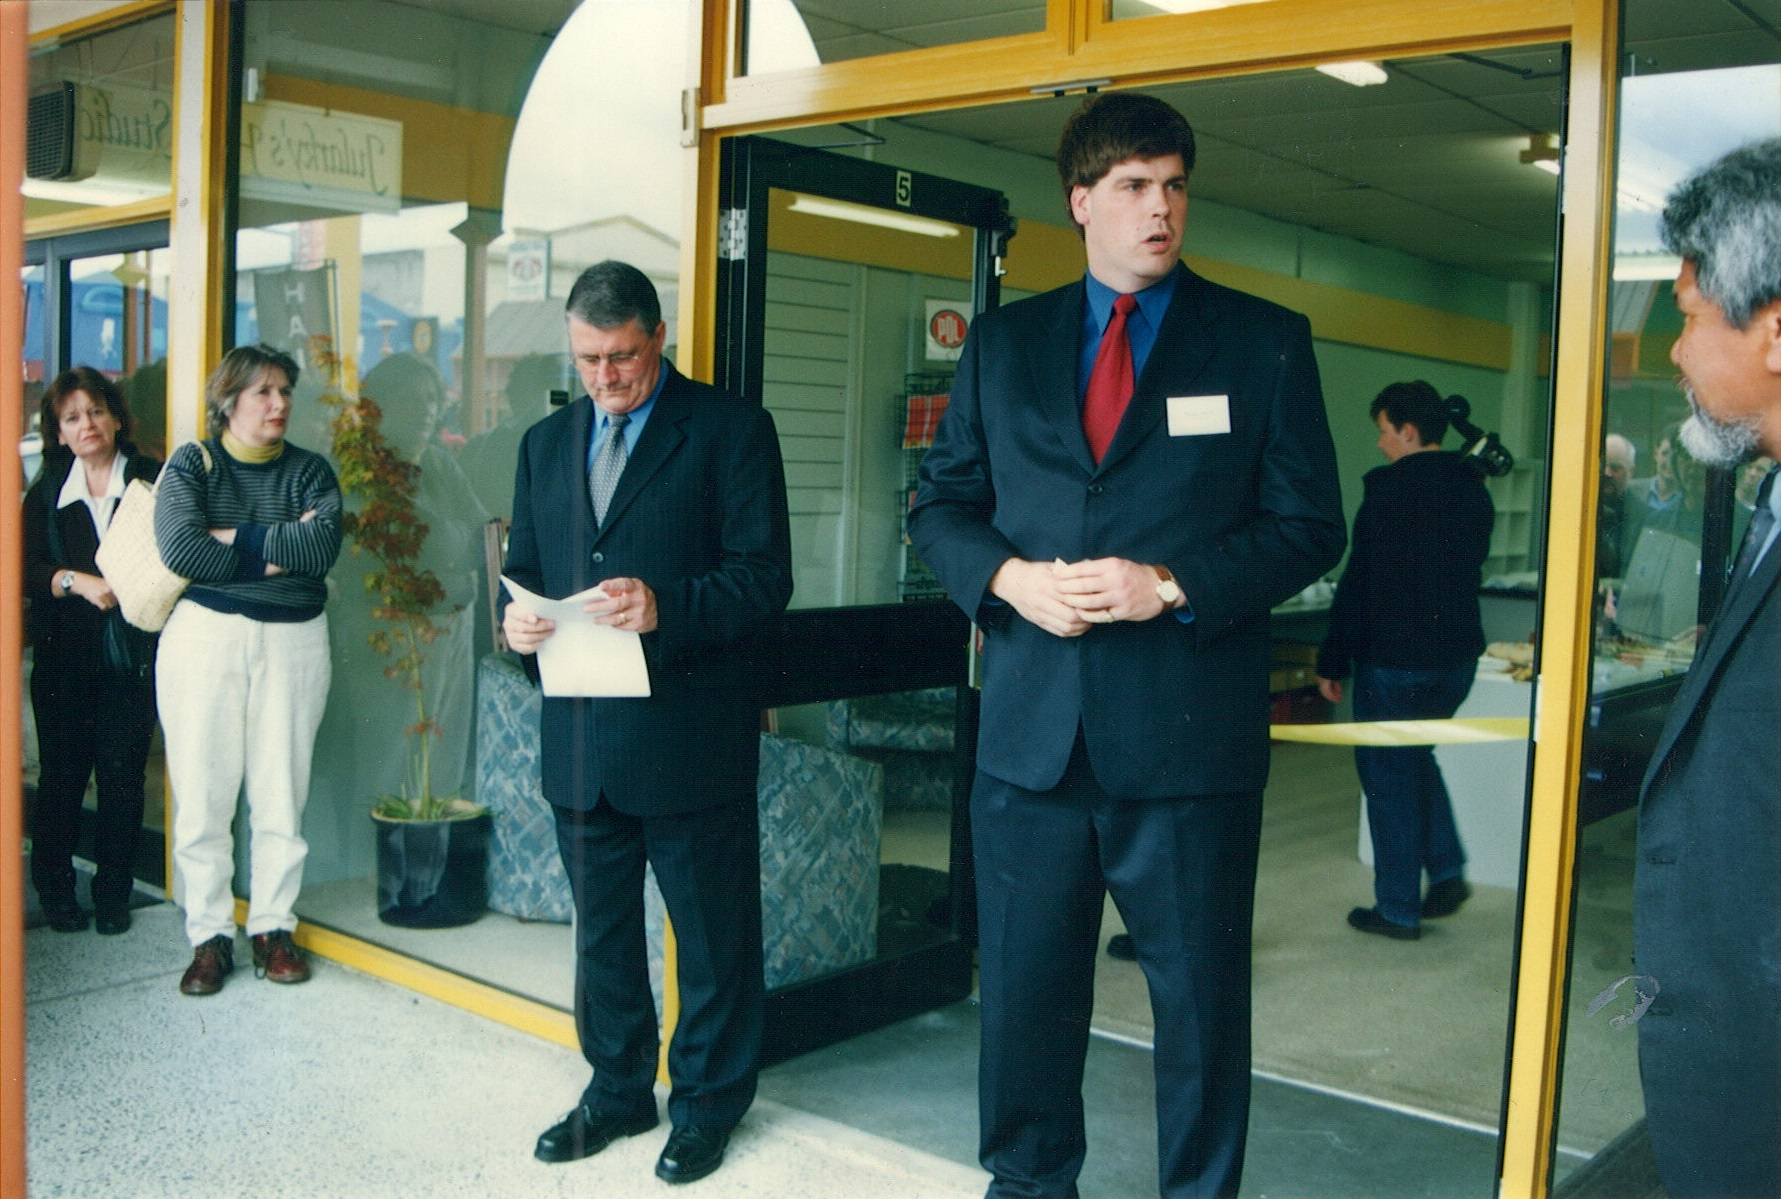 Deputy Prime Minister Jim Anderton (centre left) reviews his notes prior to delivering his speech officially opening Addington.net on 23 November 2001.